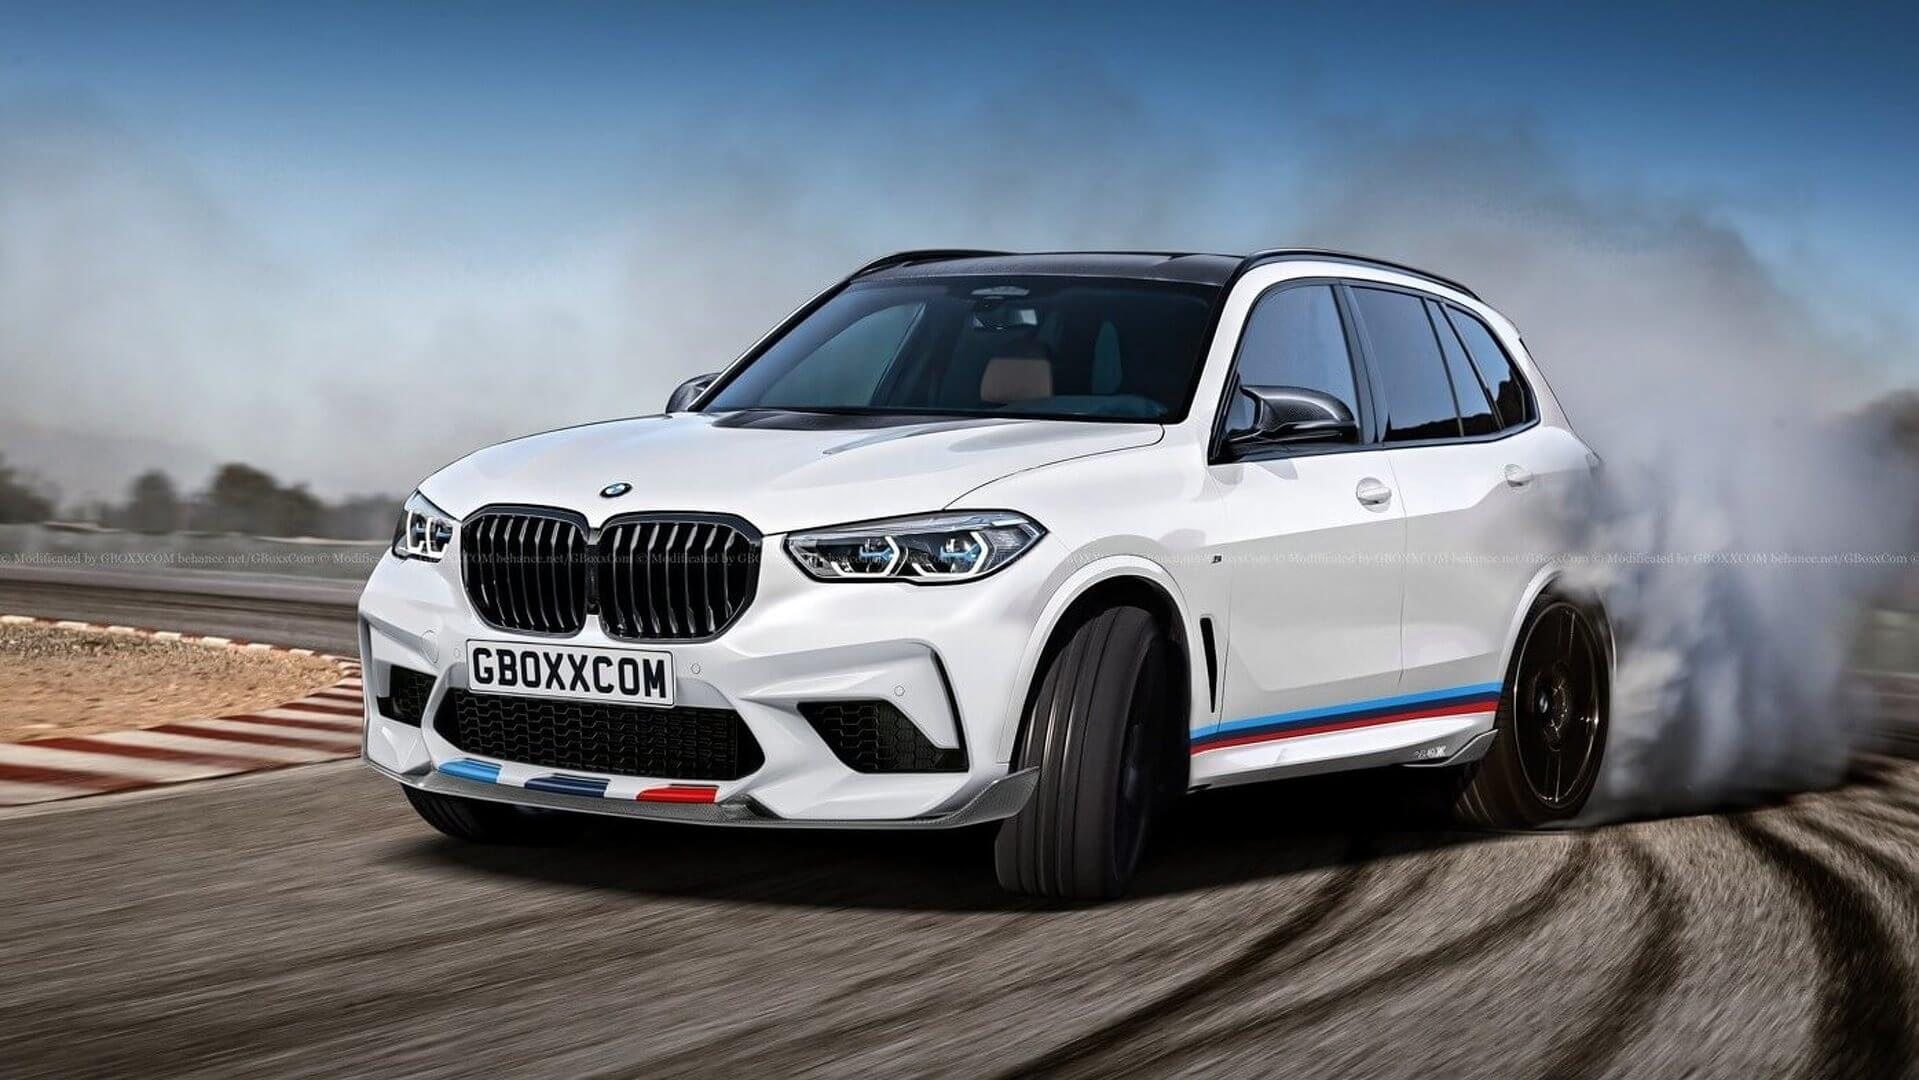 The fourth generation of the BMW X5 is officially presented